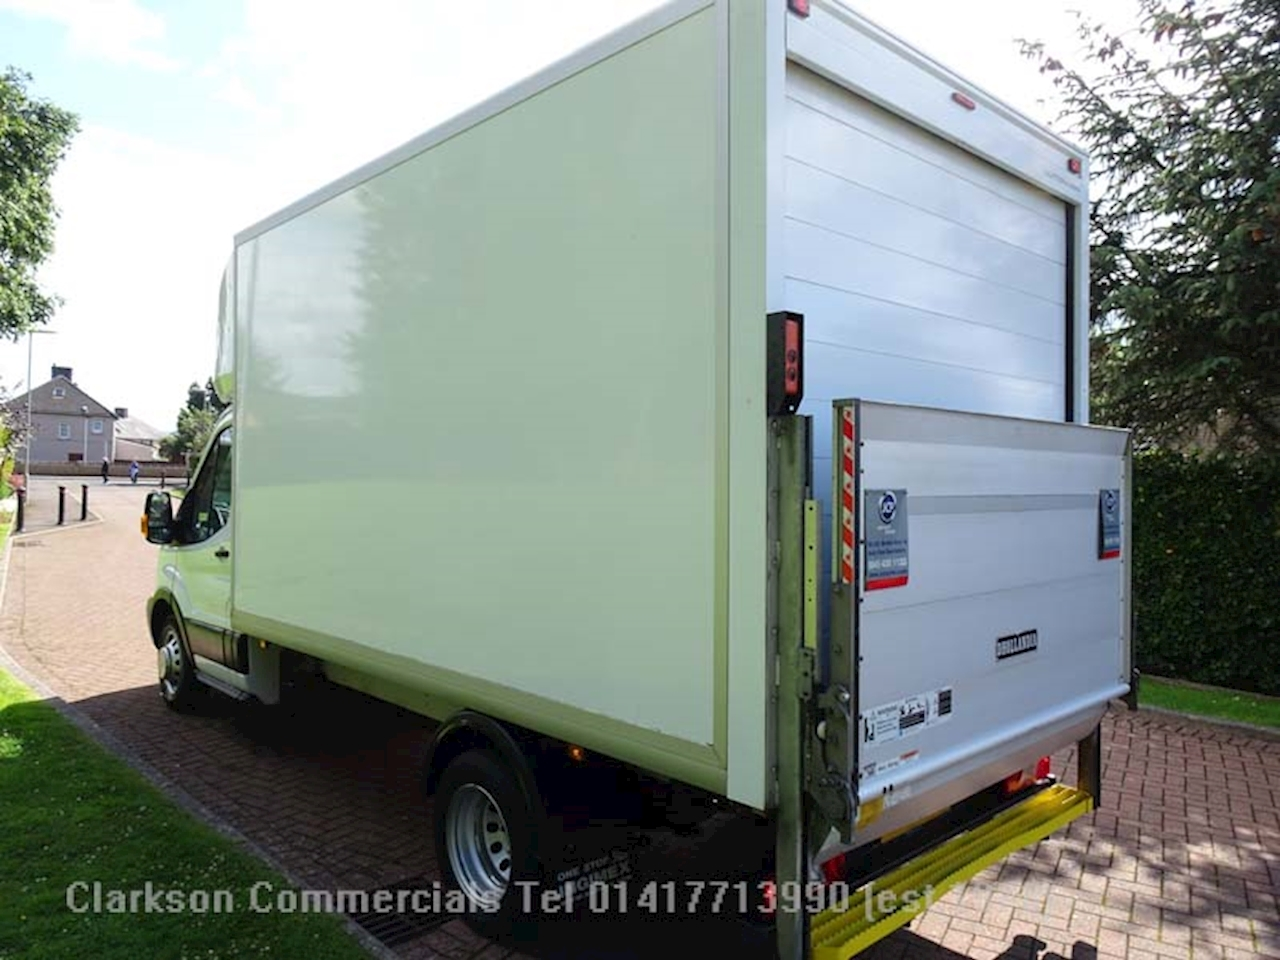 Transit 350 2.0TDCi / 130ps L3 LWB GRP luton with 500kg tallift 2.0 Luton Van Manual Diesel